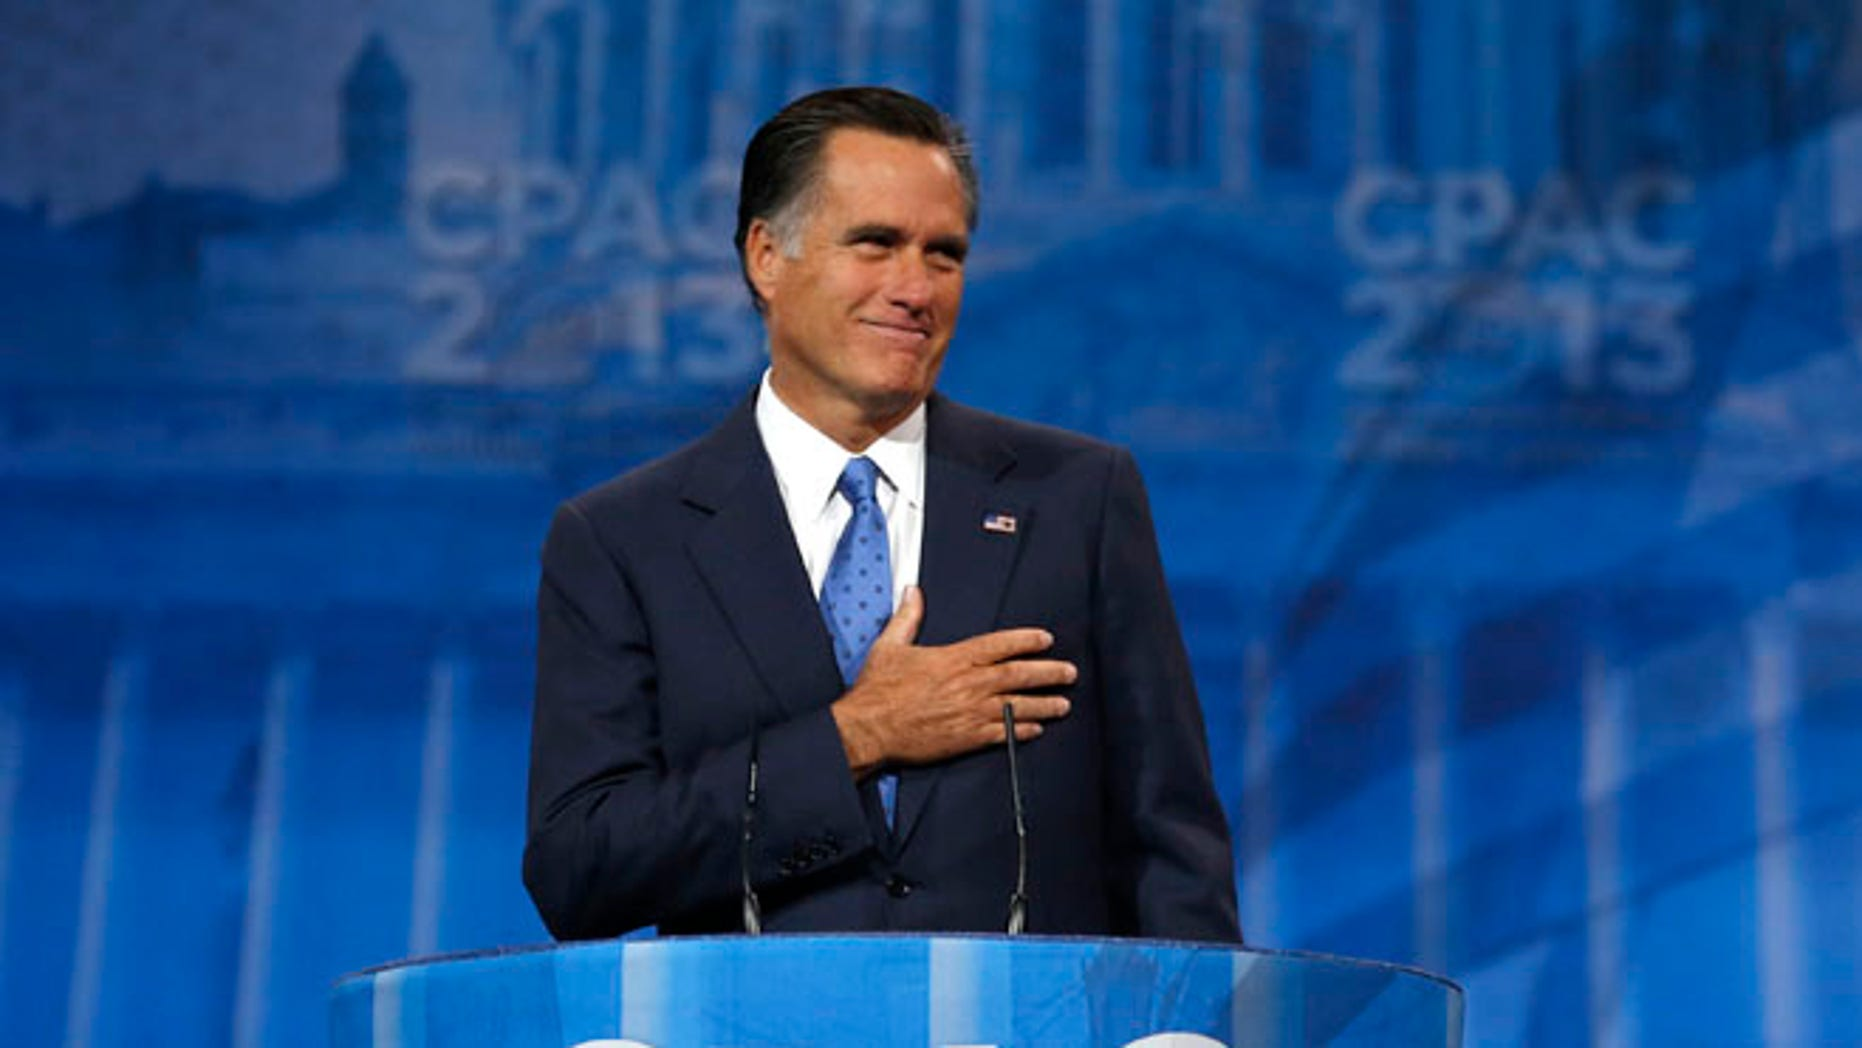 Mitt Romney at the Conservative Political Action Conference (CPAC) at National Harbor, Maryland Mar. 15, 2013.